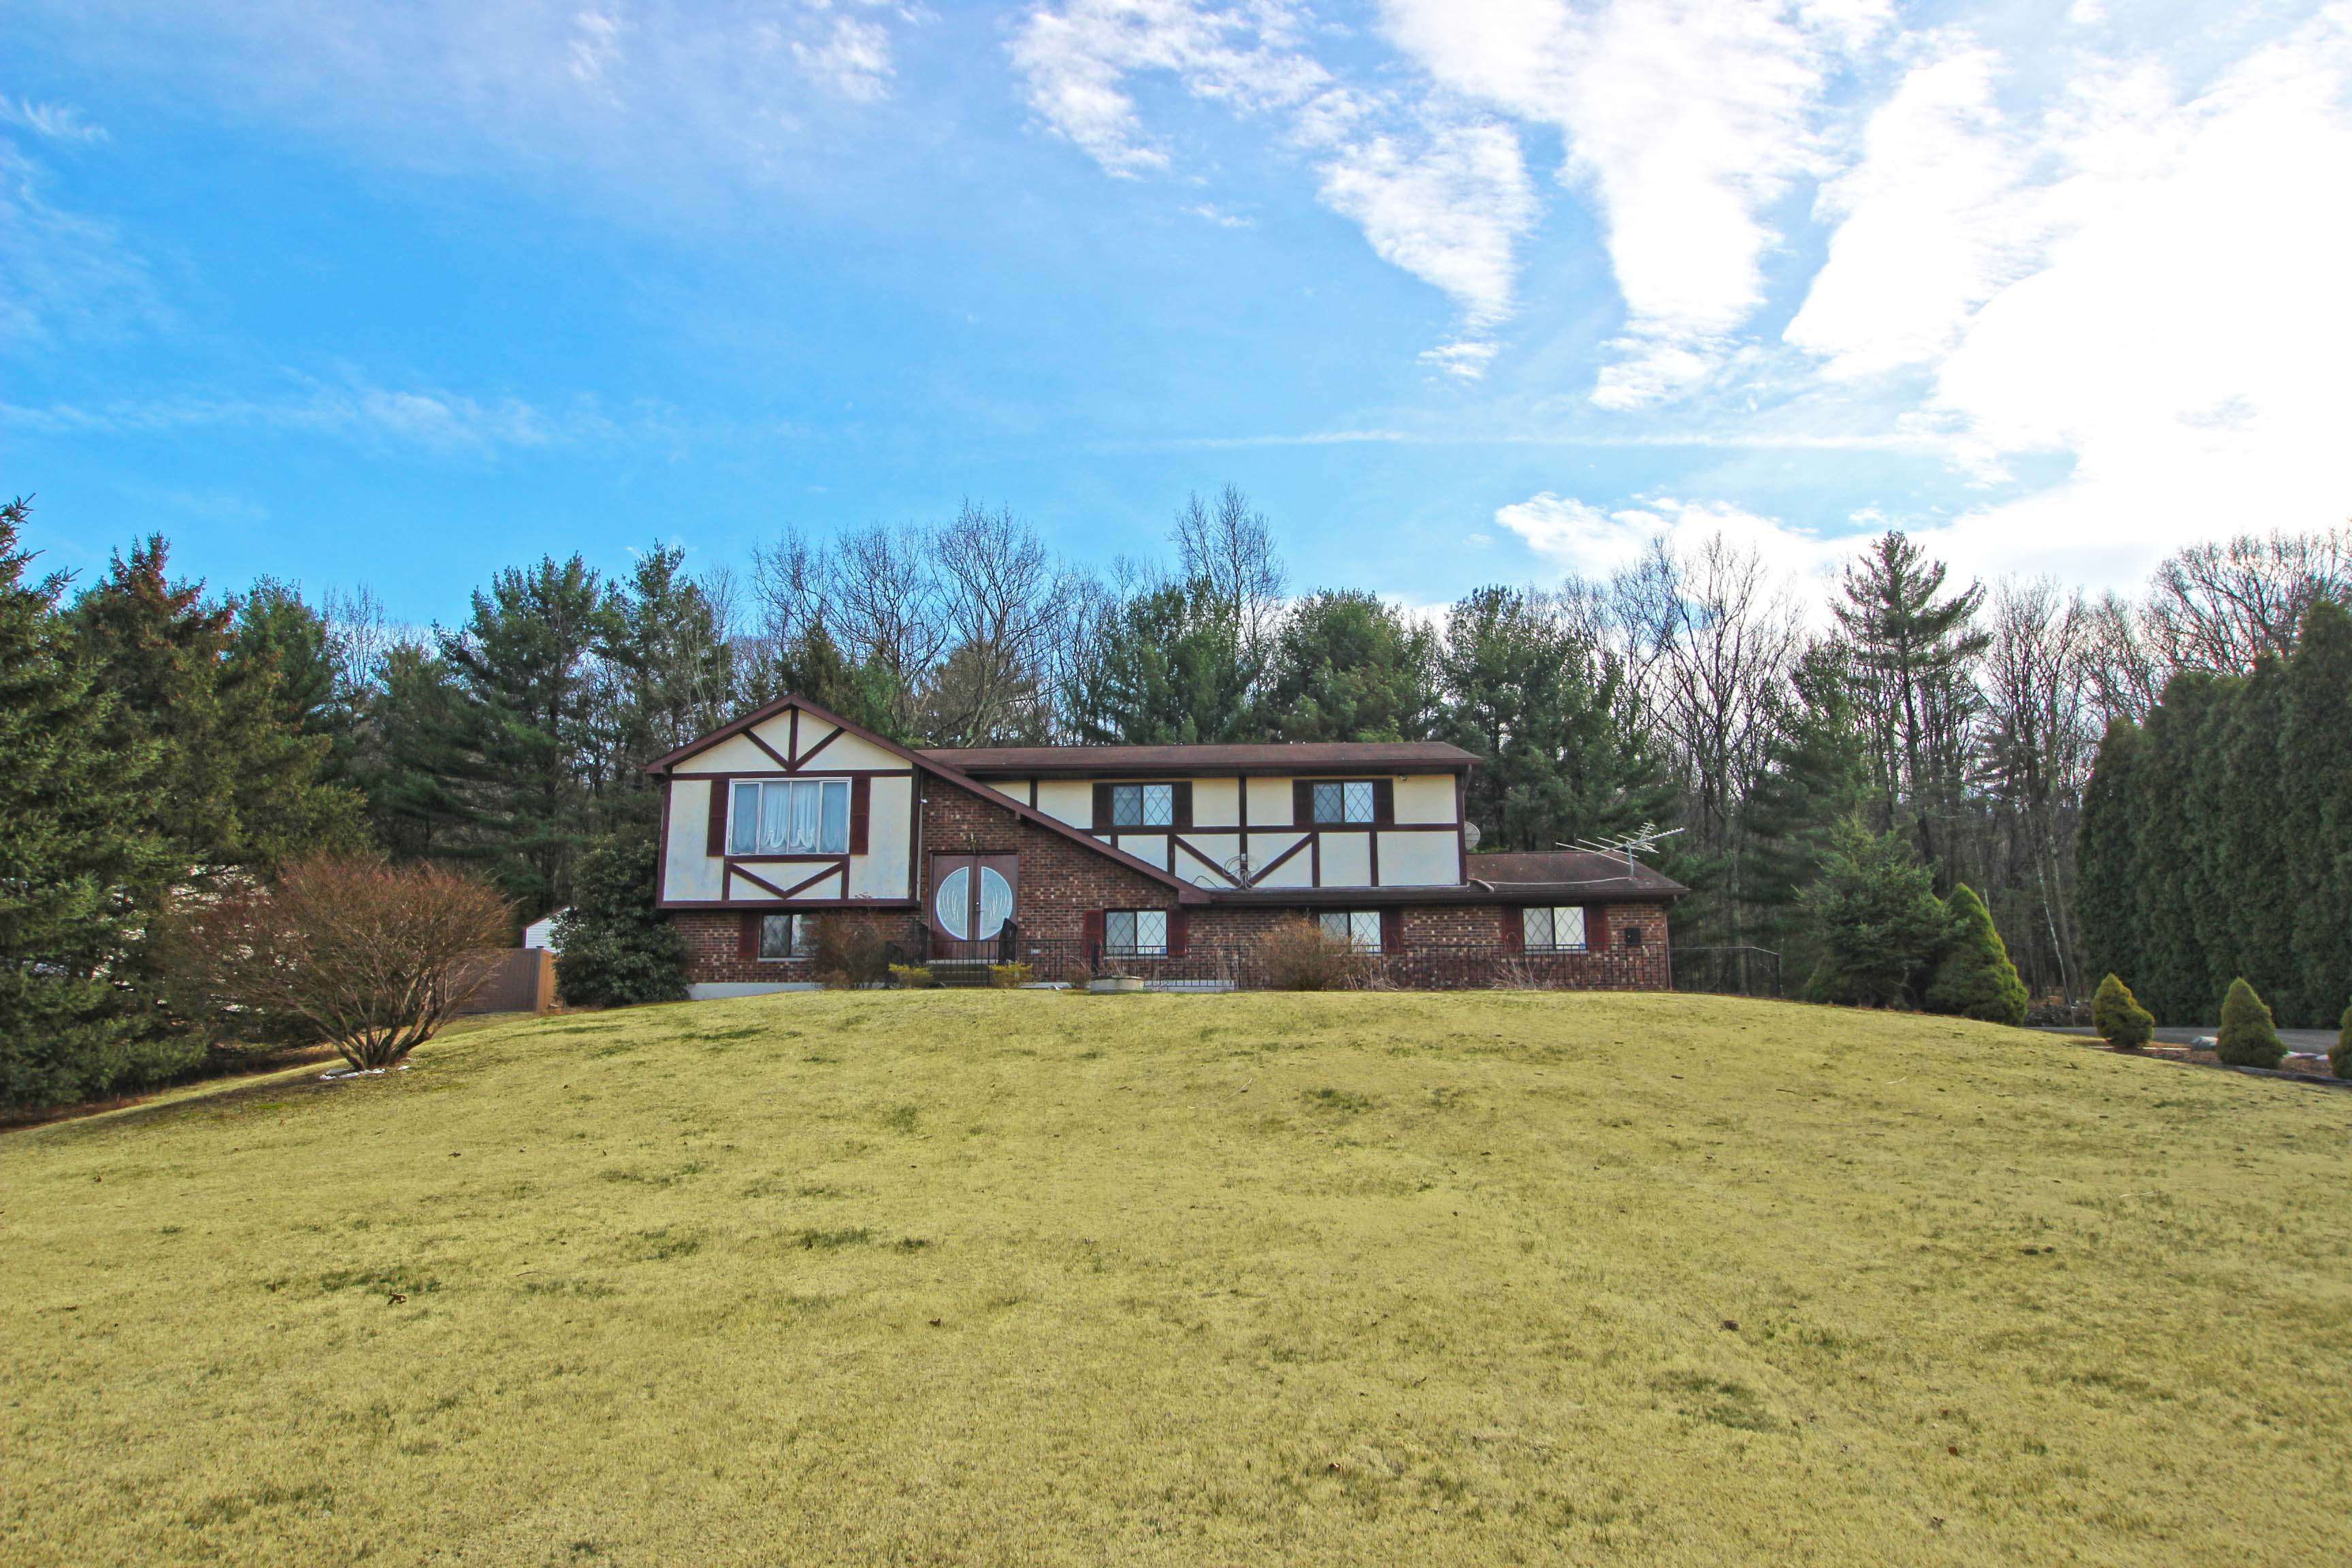 Brodheadsville Home For Sale Just Listed!